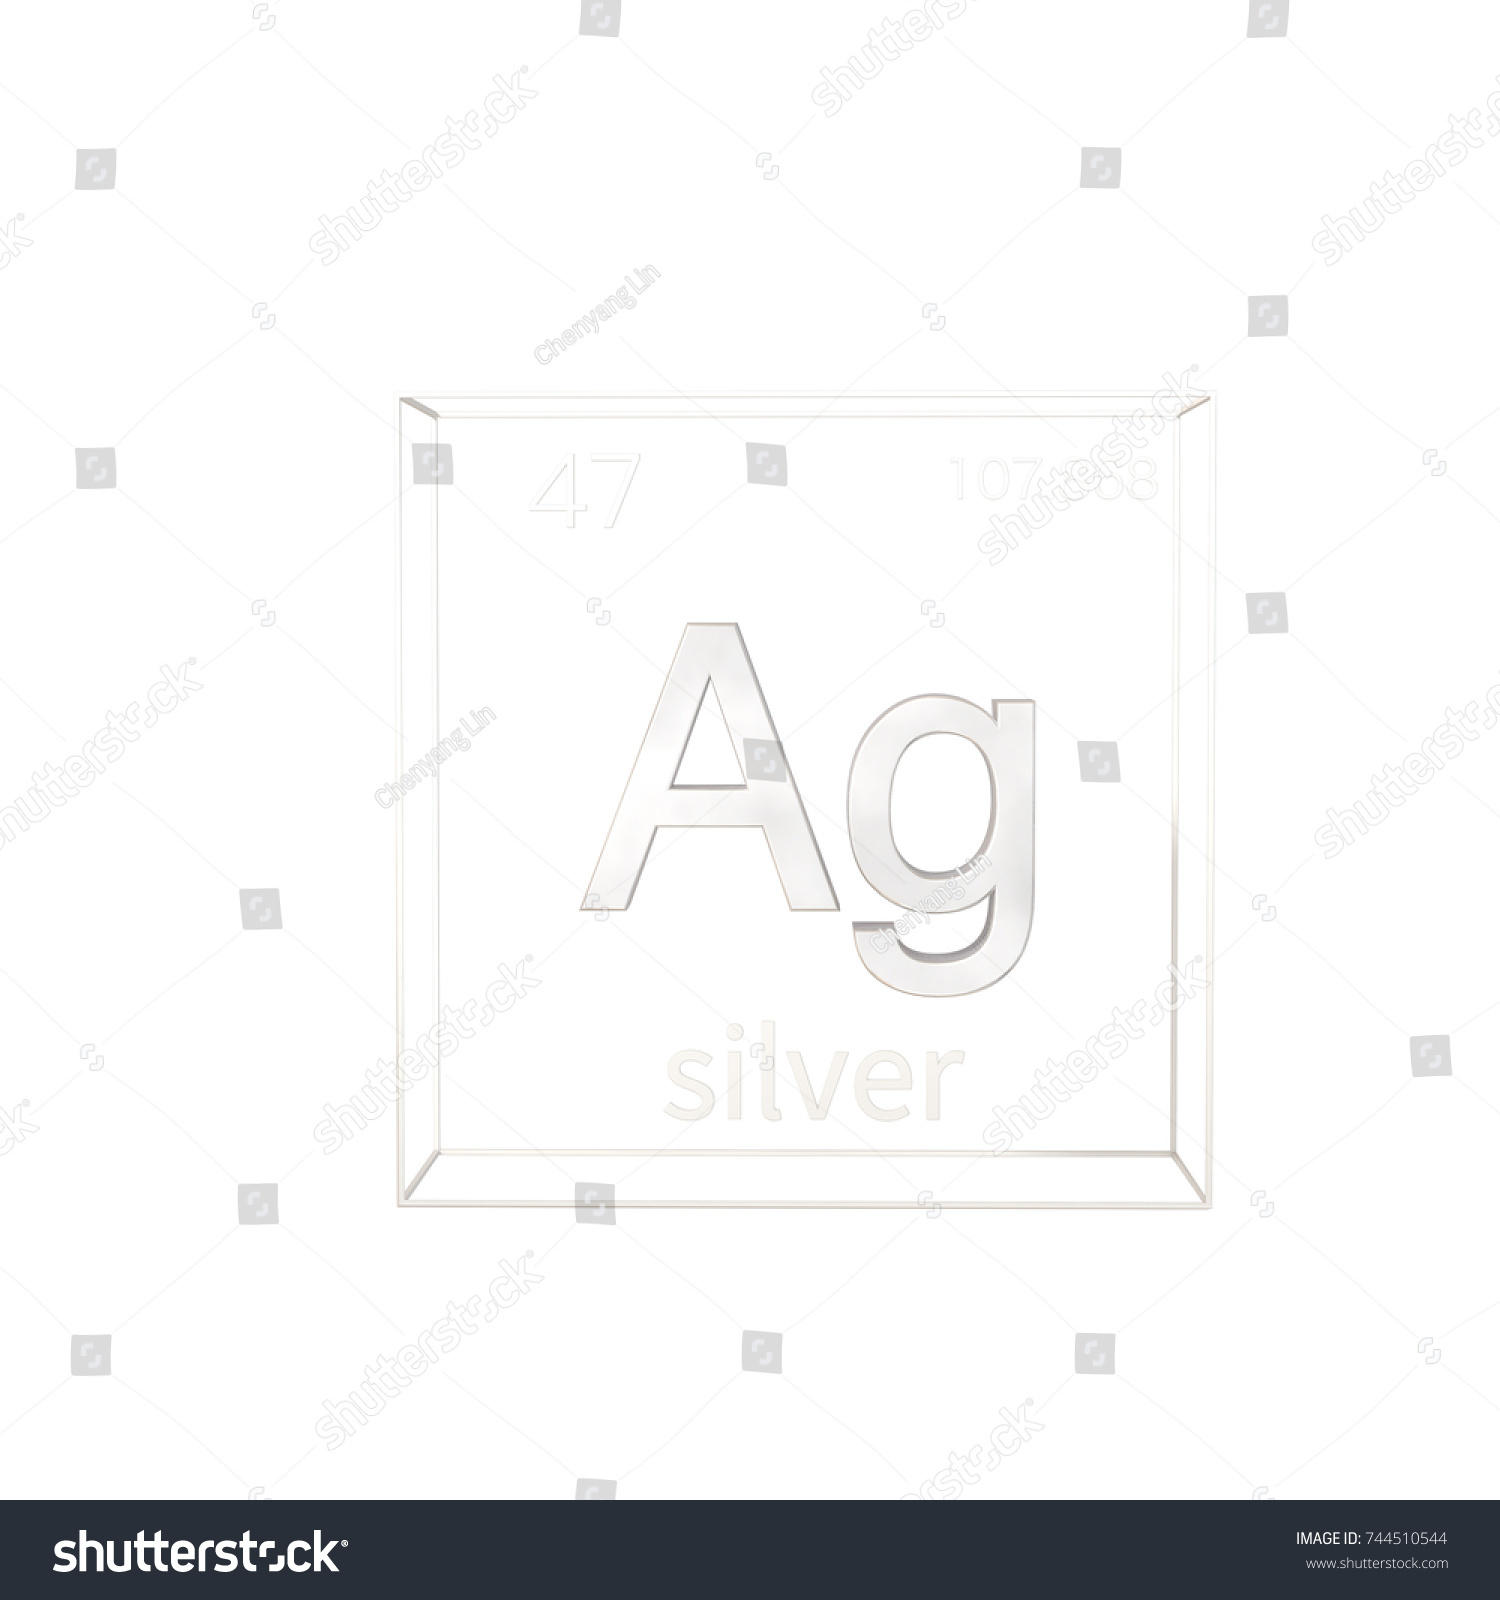 Ag symbol periodic table images symbol and sign ideas 3d render silver chemical element atomic stock illustration 3d render silver chemical element atomic number and urtaz Image collections